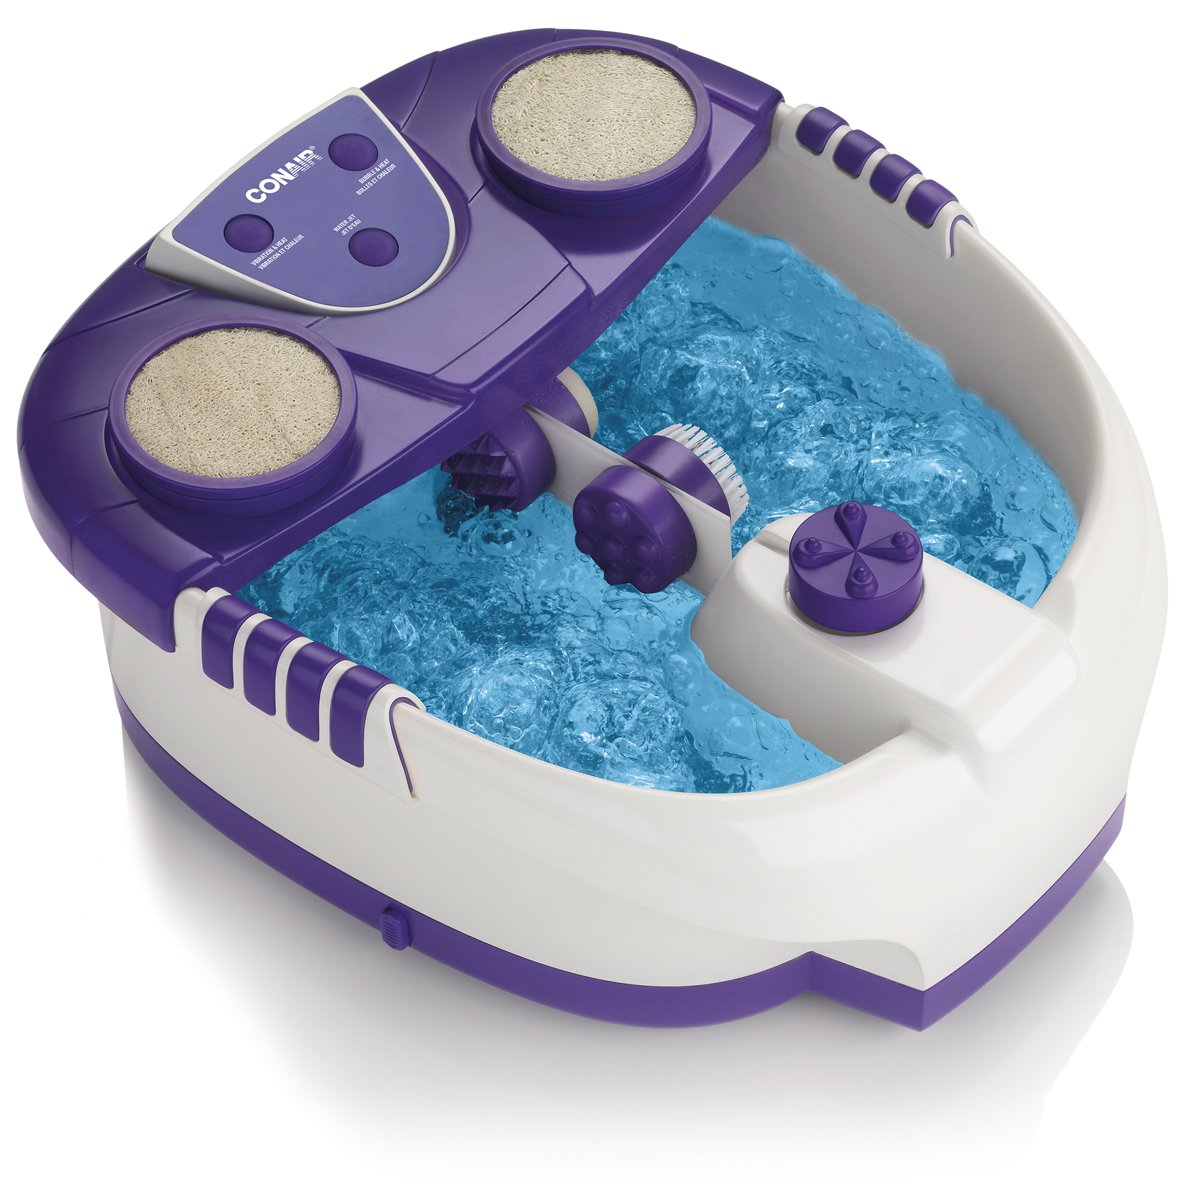 Conair CTXFB51C Foot Bath Spa: Amazon.ca: Health & Personal Care